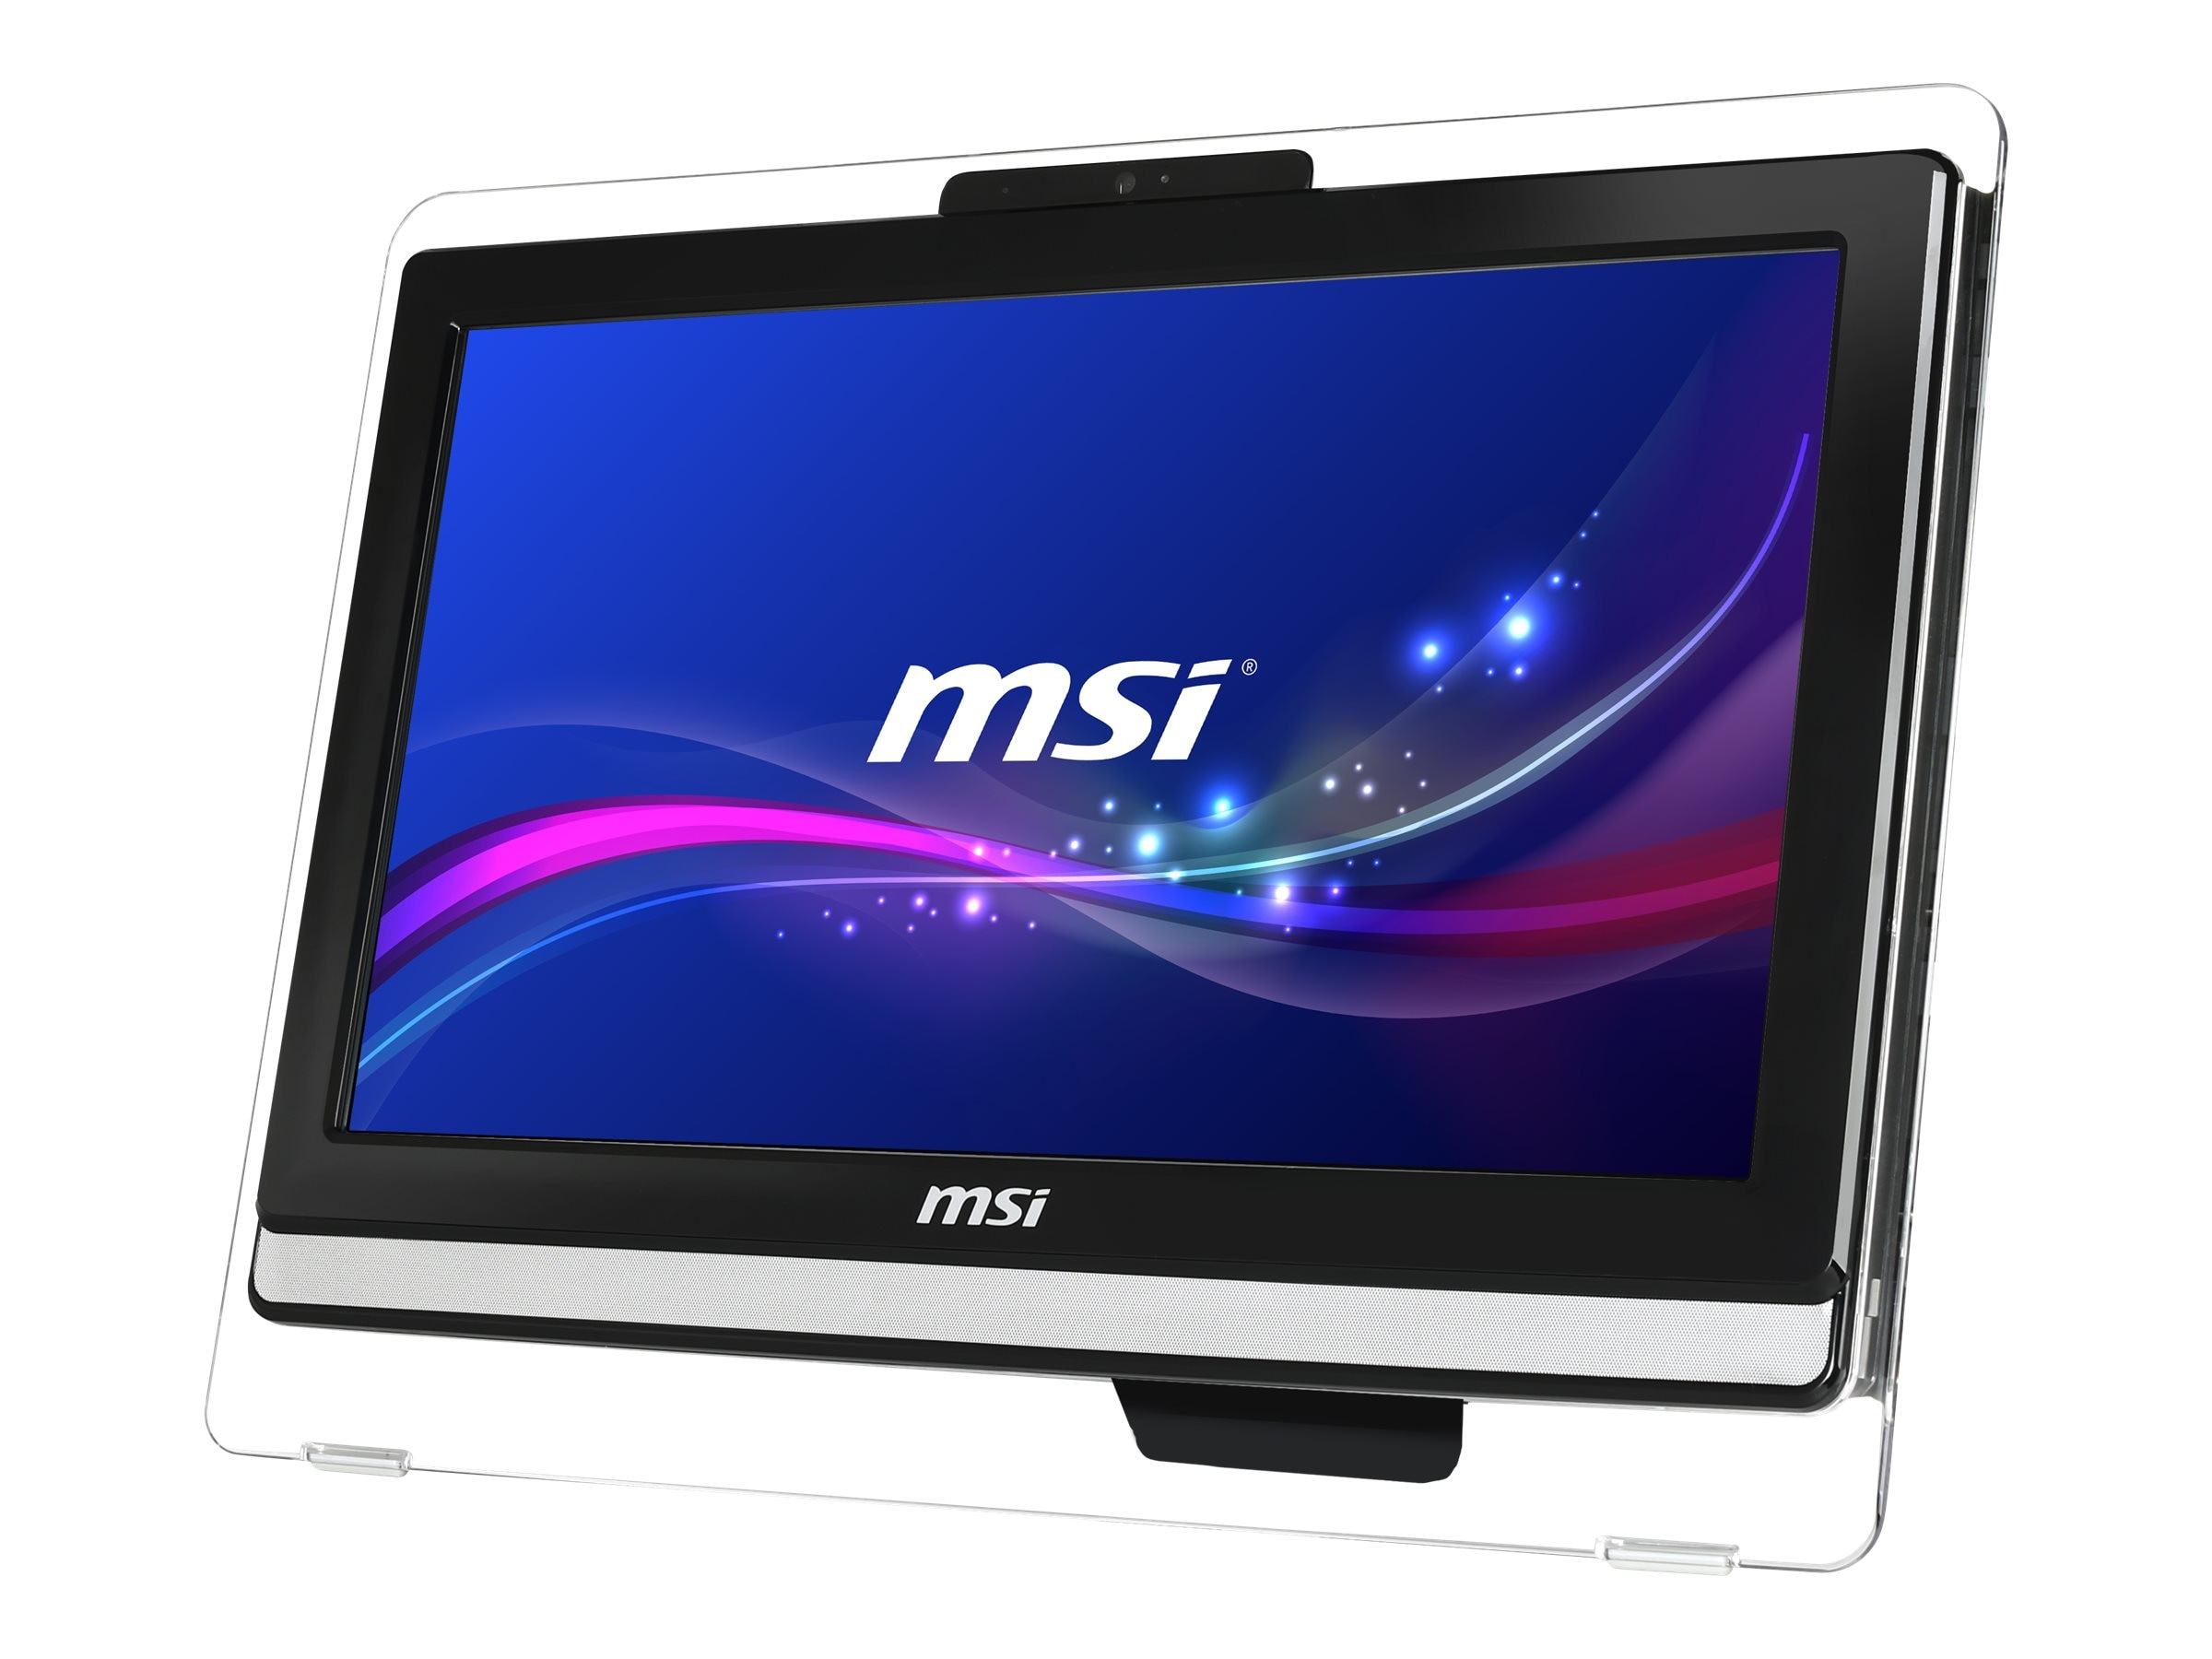 MSI AE202-013US AIO Celeron 1037U 1.8GHz 4GB 500GB DVD SM GbE bgn WC 19.5 MT W7HP, AE202-013US, 17590393, Desktops - All-in-One